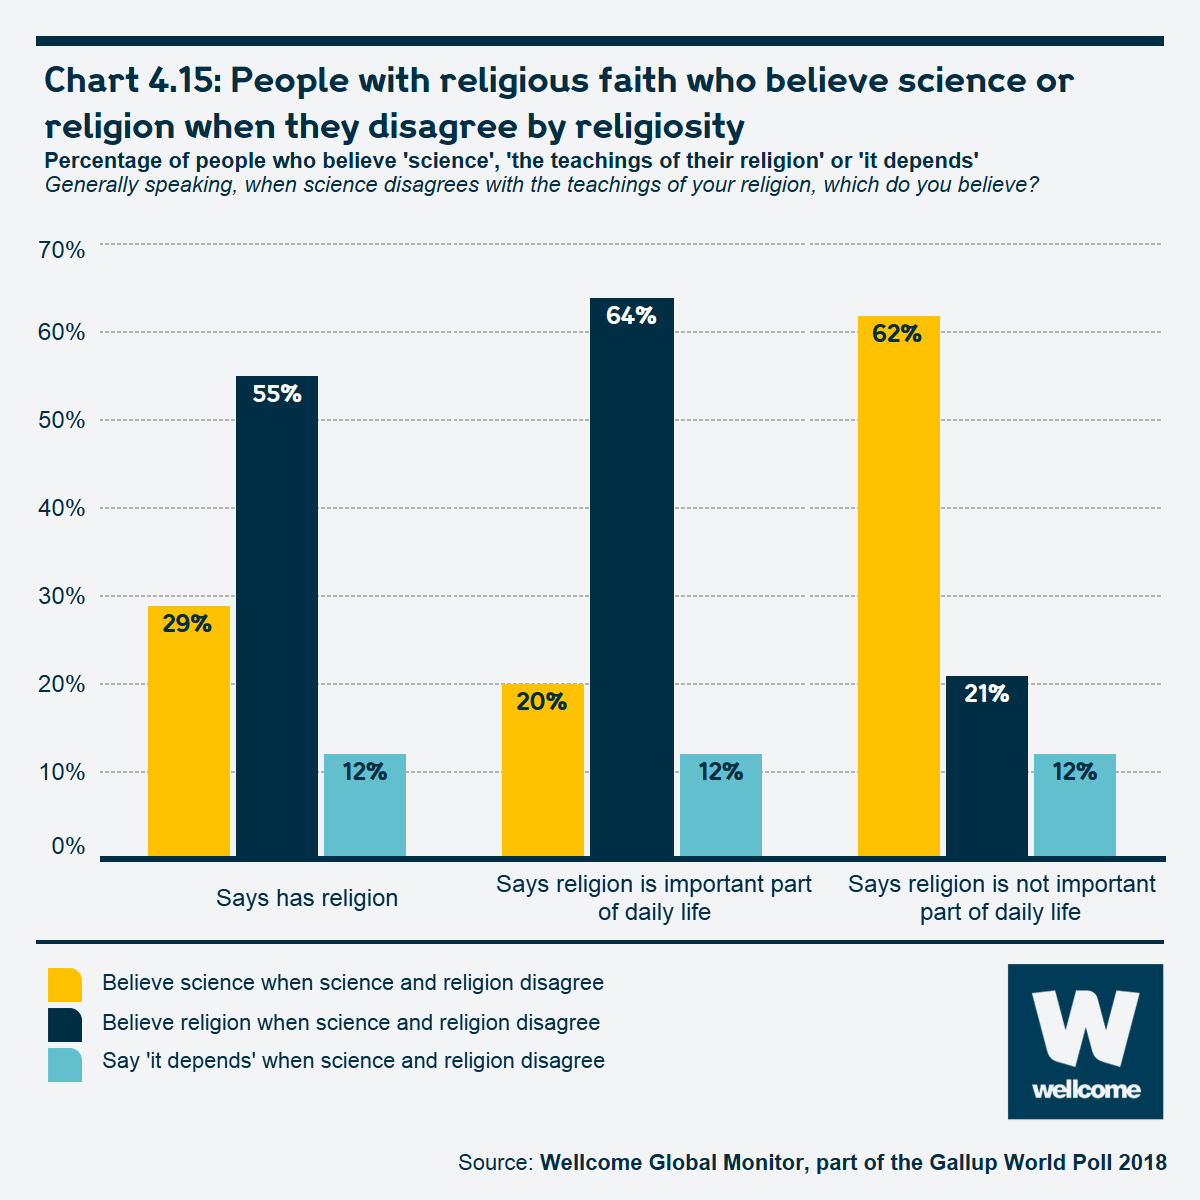 Chart 4.15 People with religious faith who believe science or religion when they disagree by religiosity